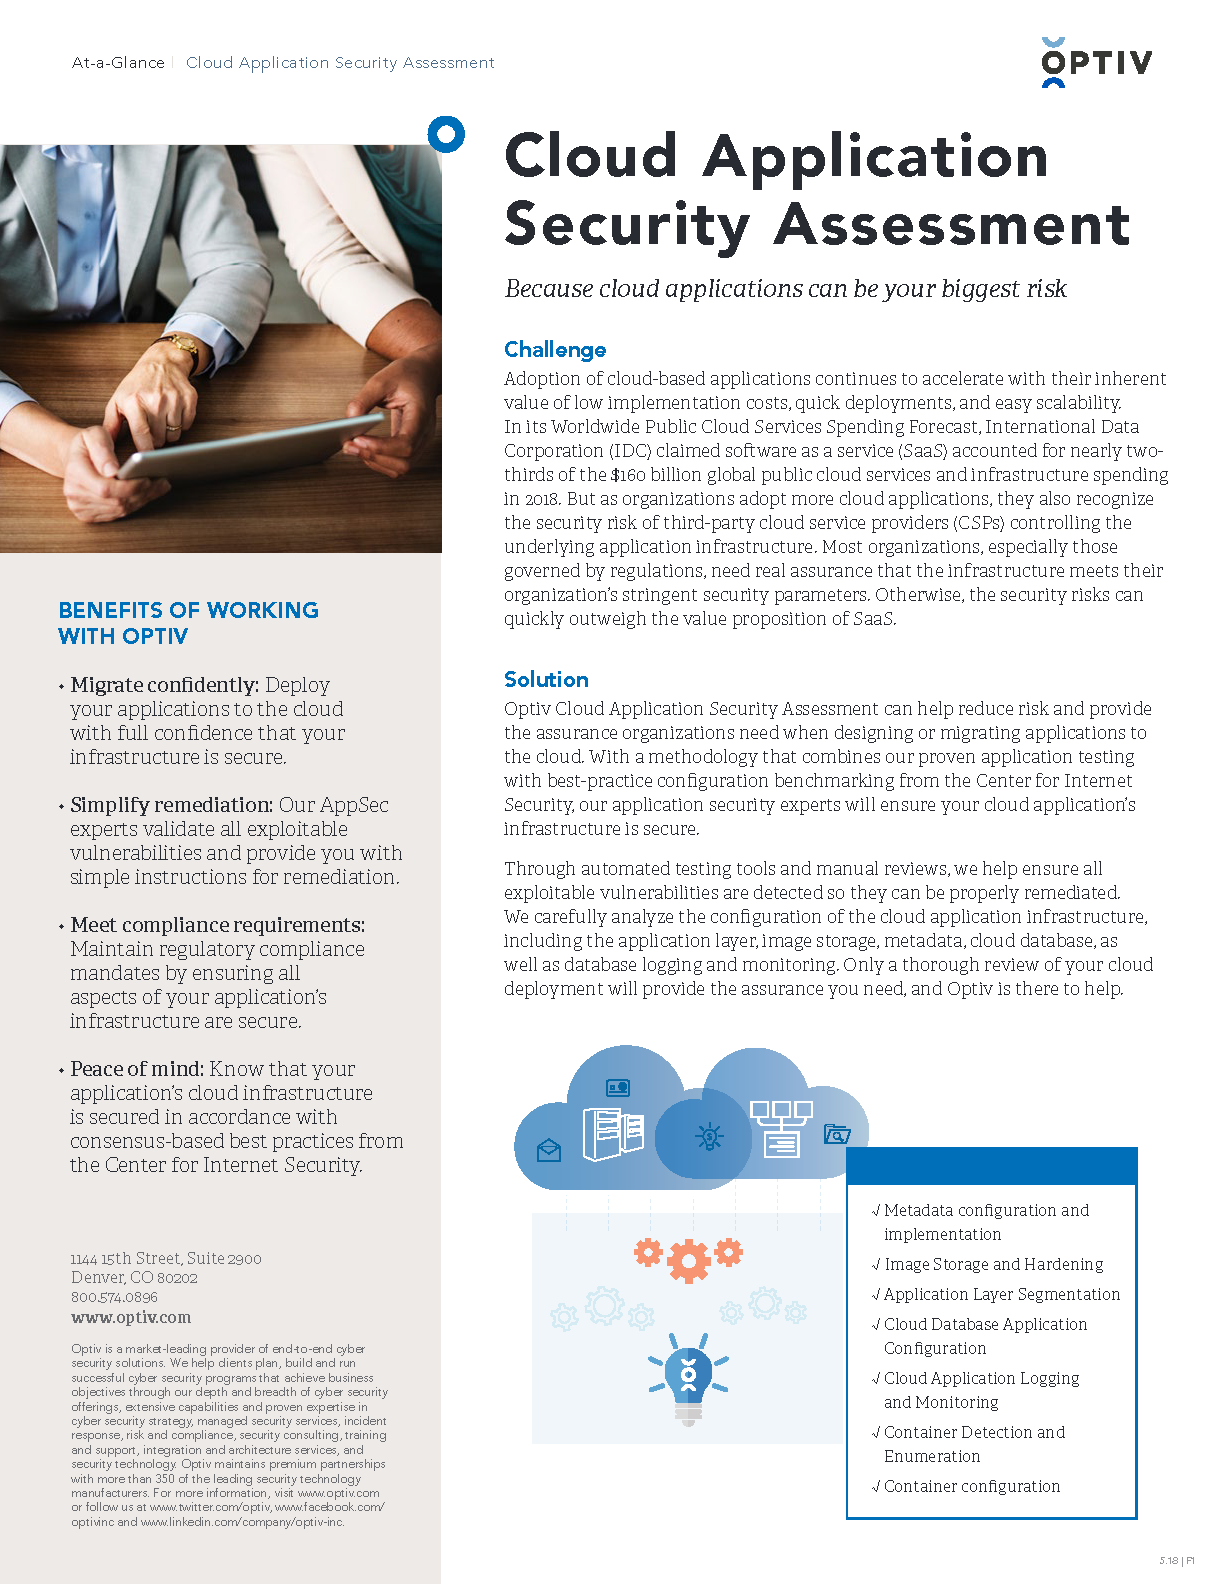 Cloud Application Security Assessment